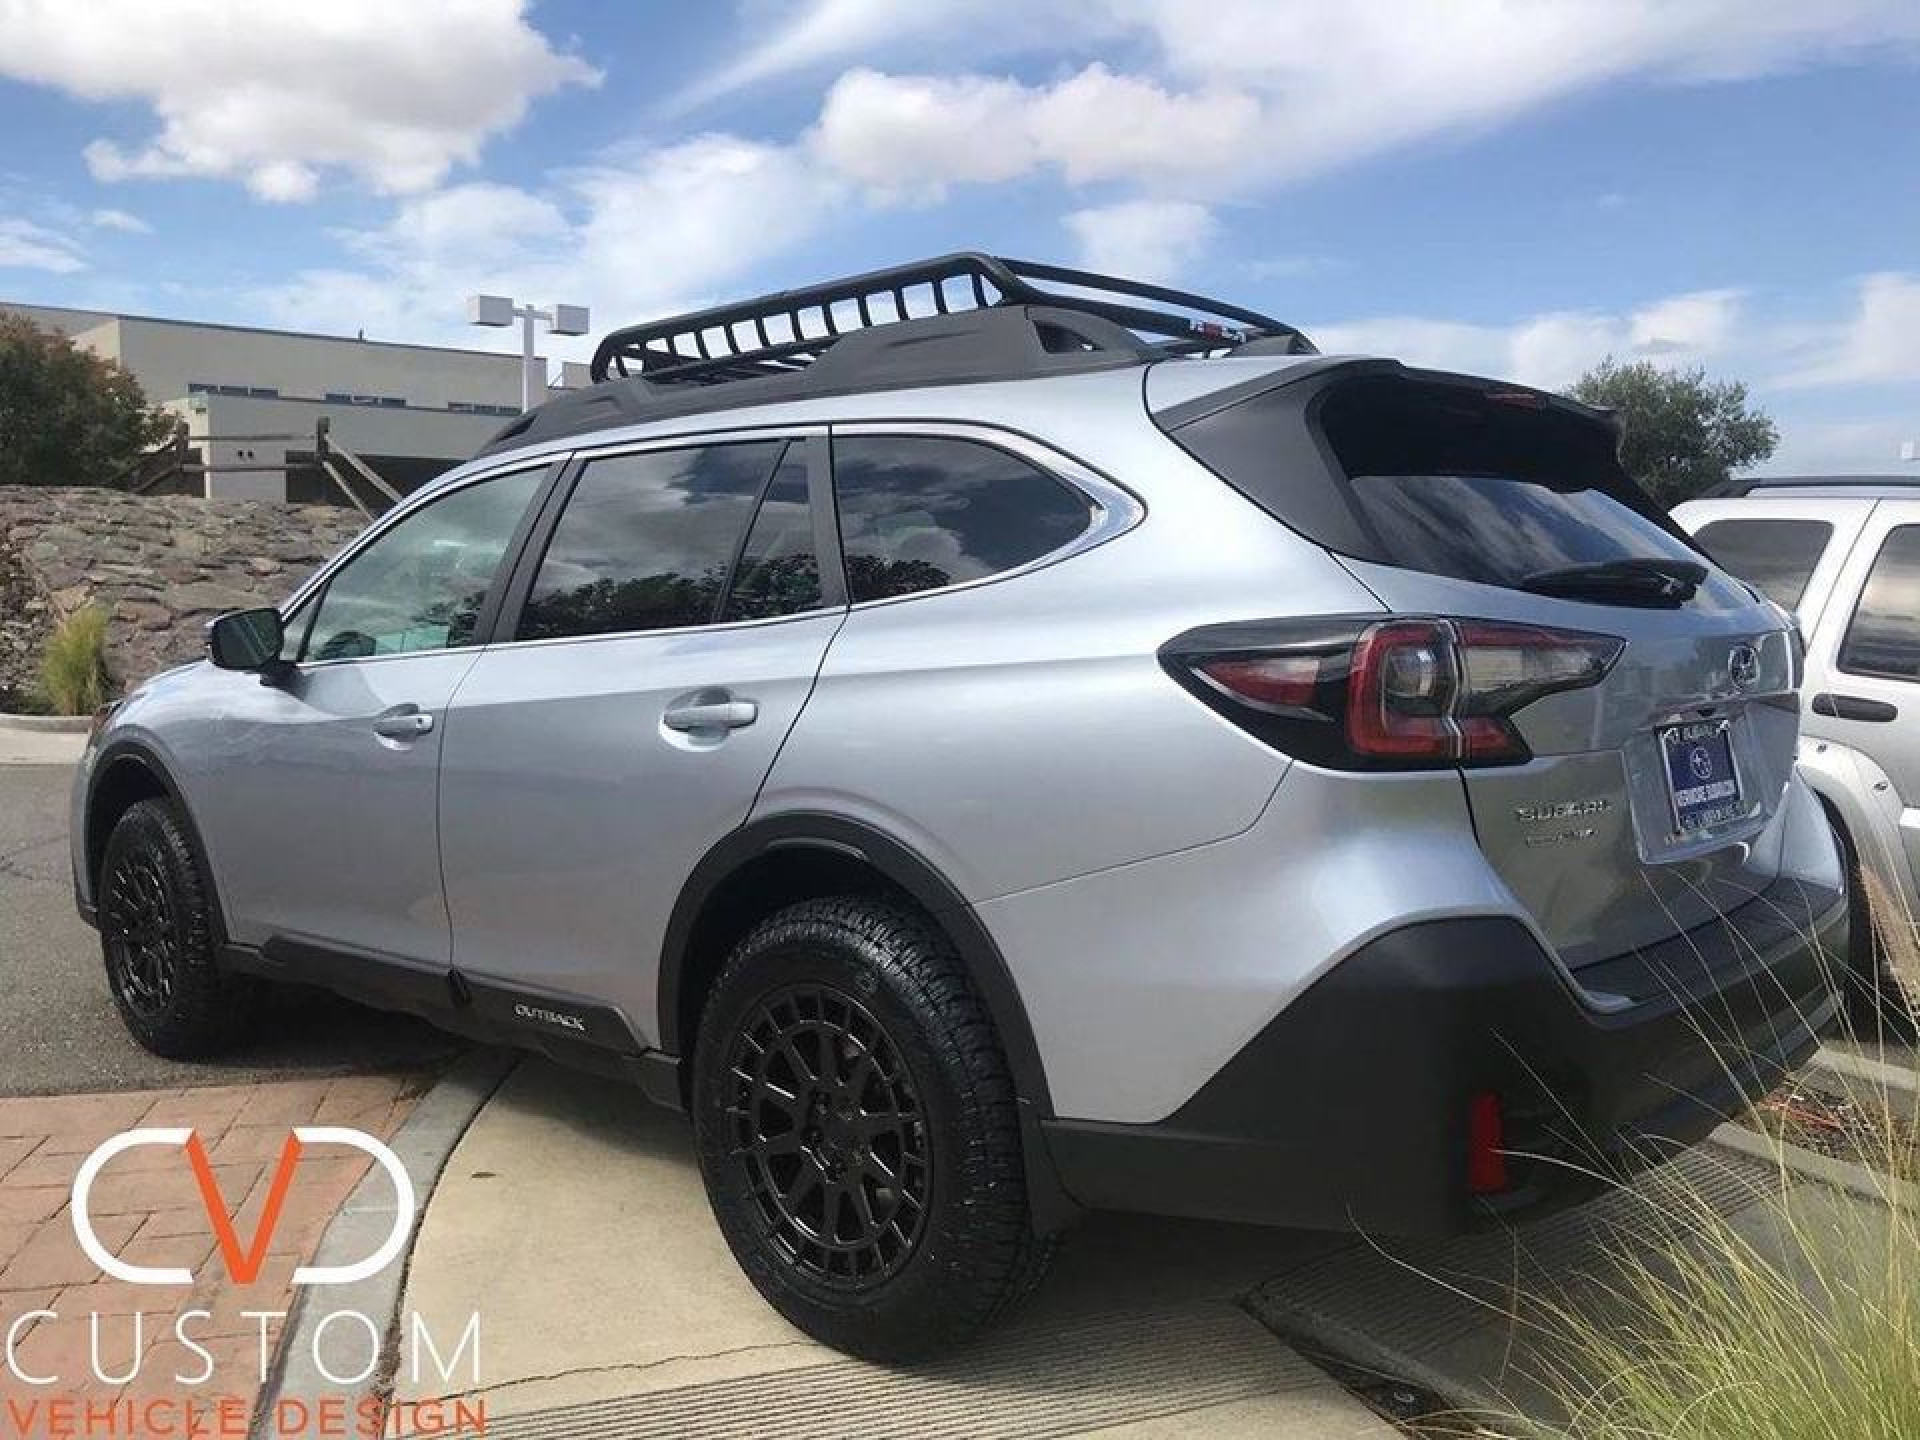 2020 Subaru Outback with the CVD Overland package (Black Rhino boxer wheels)